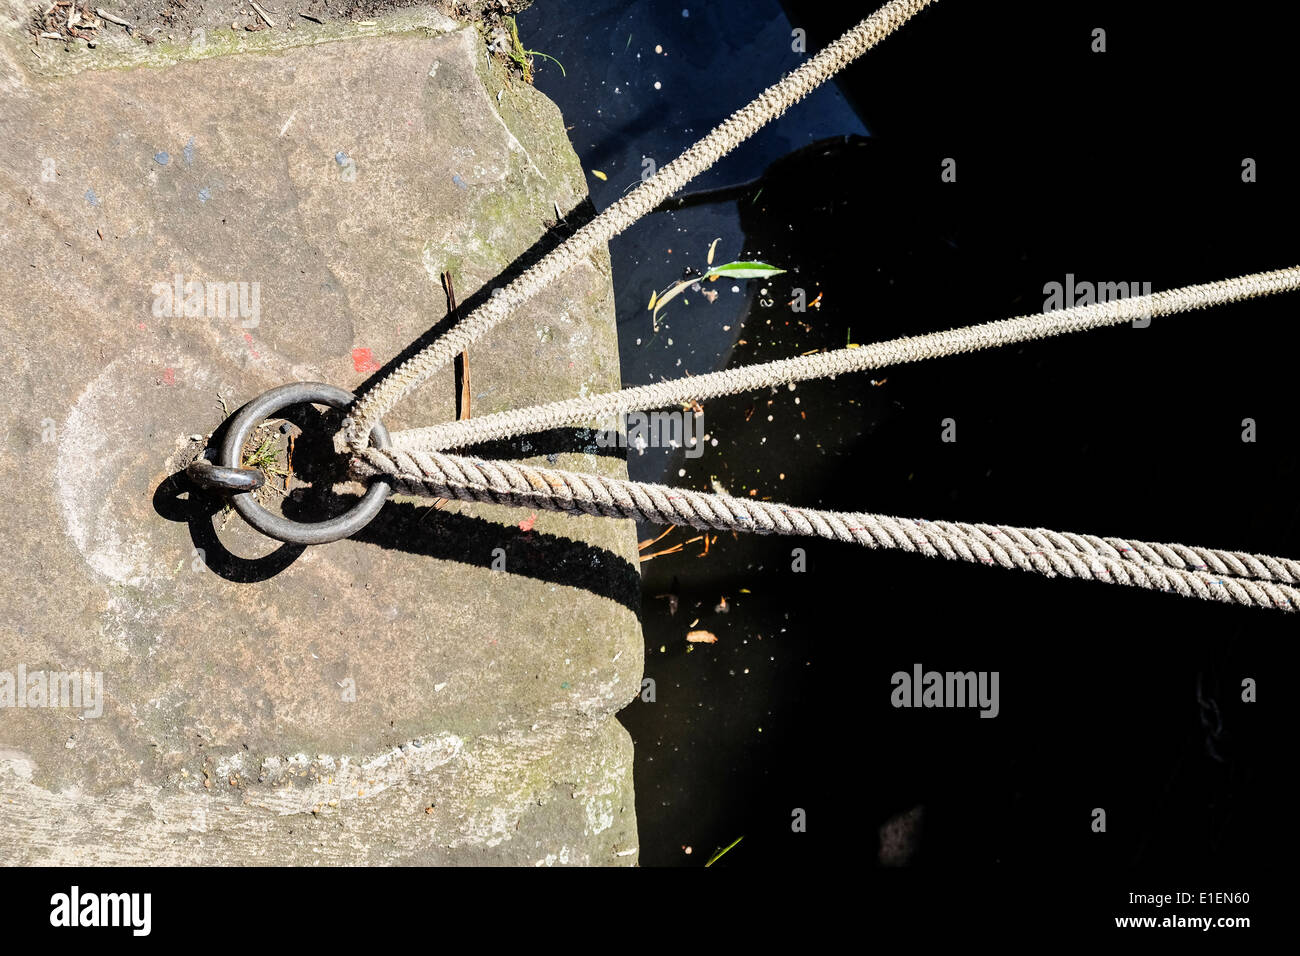 Rope under tension. - Stock Image